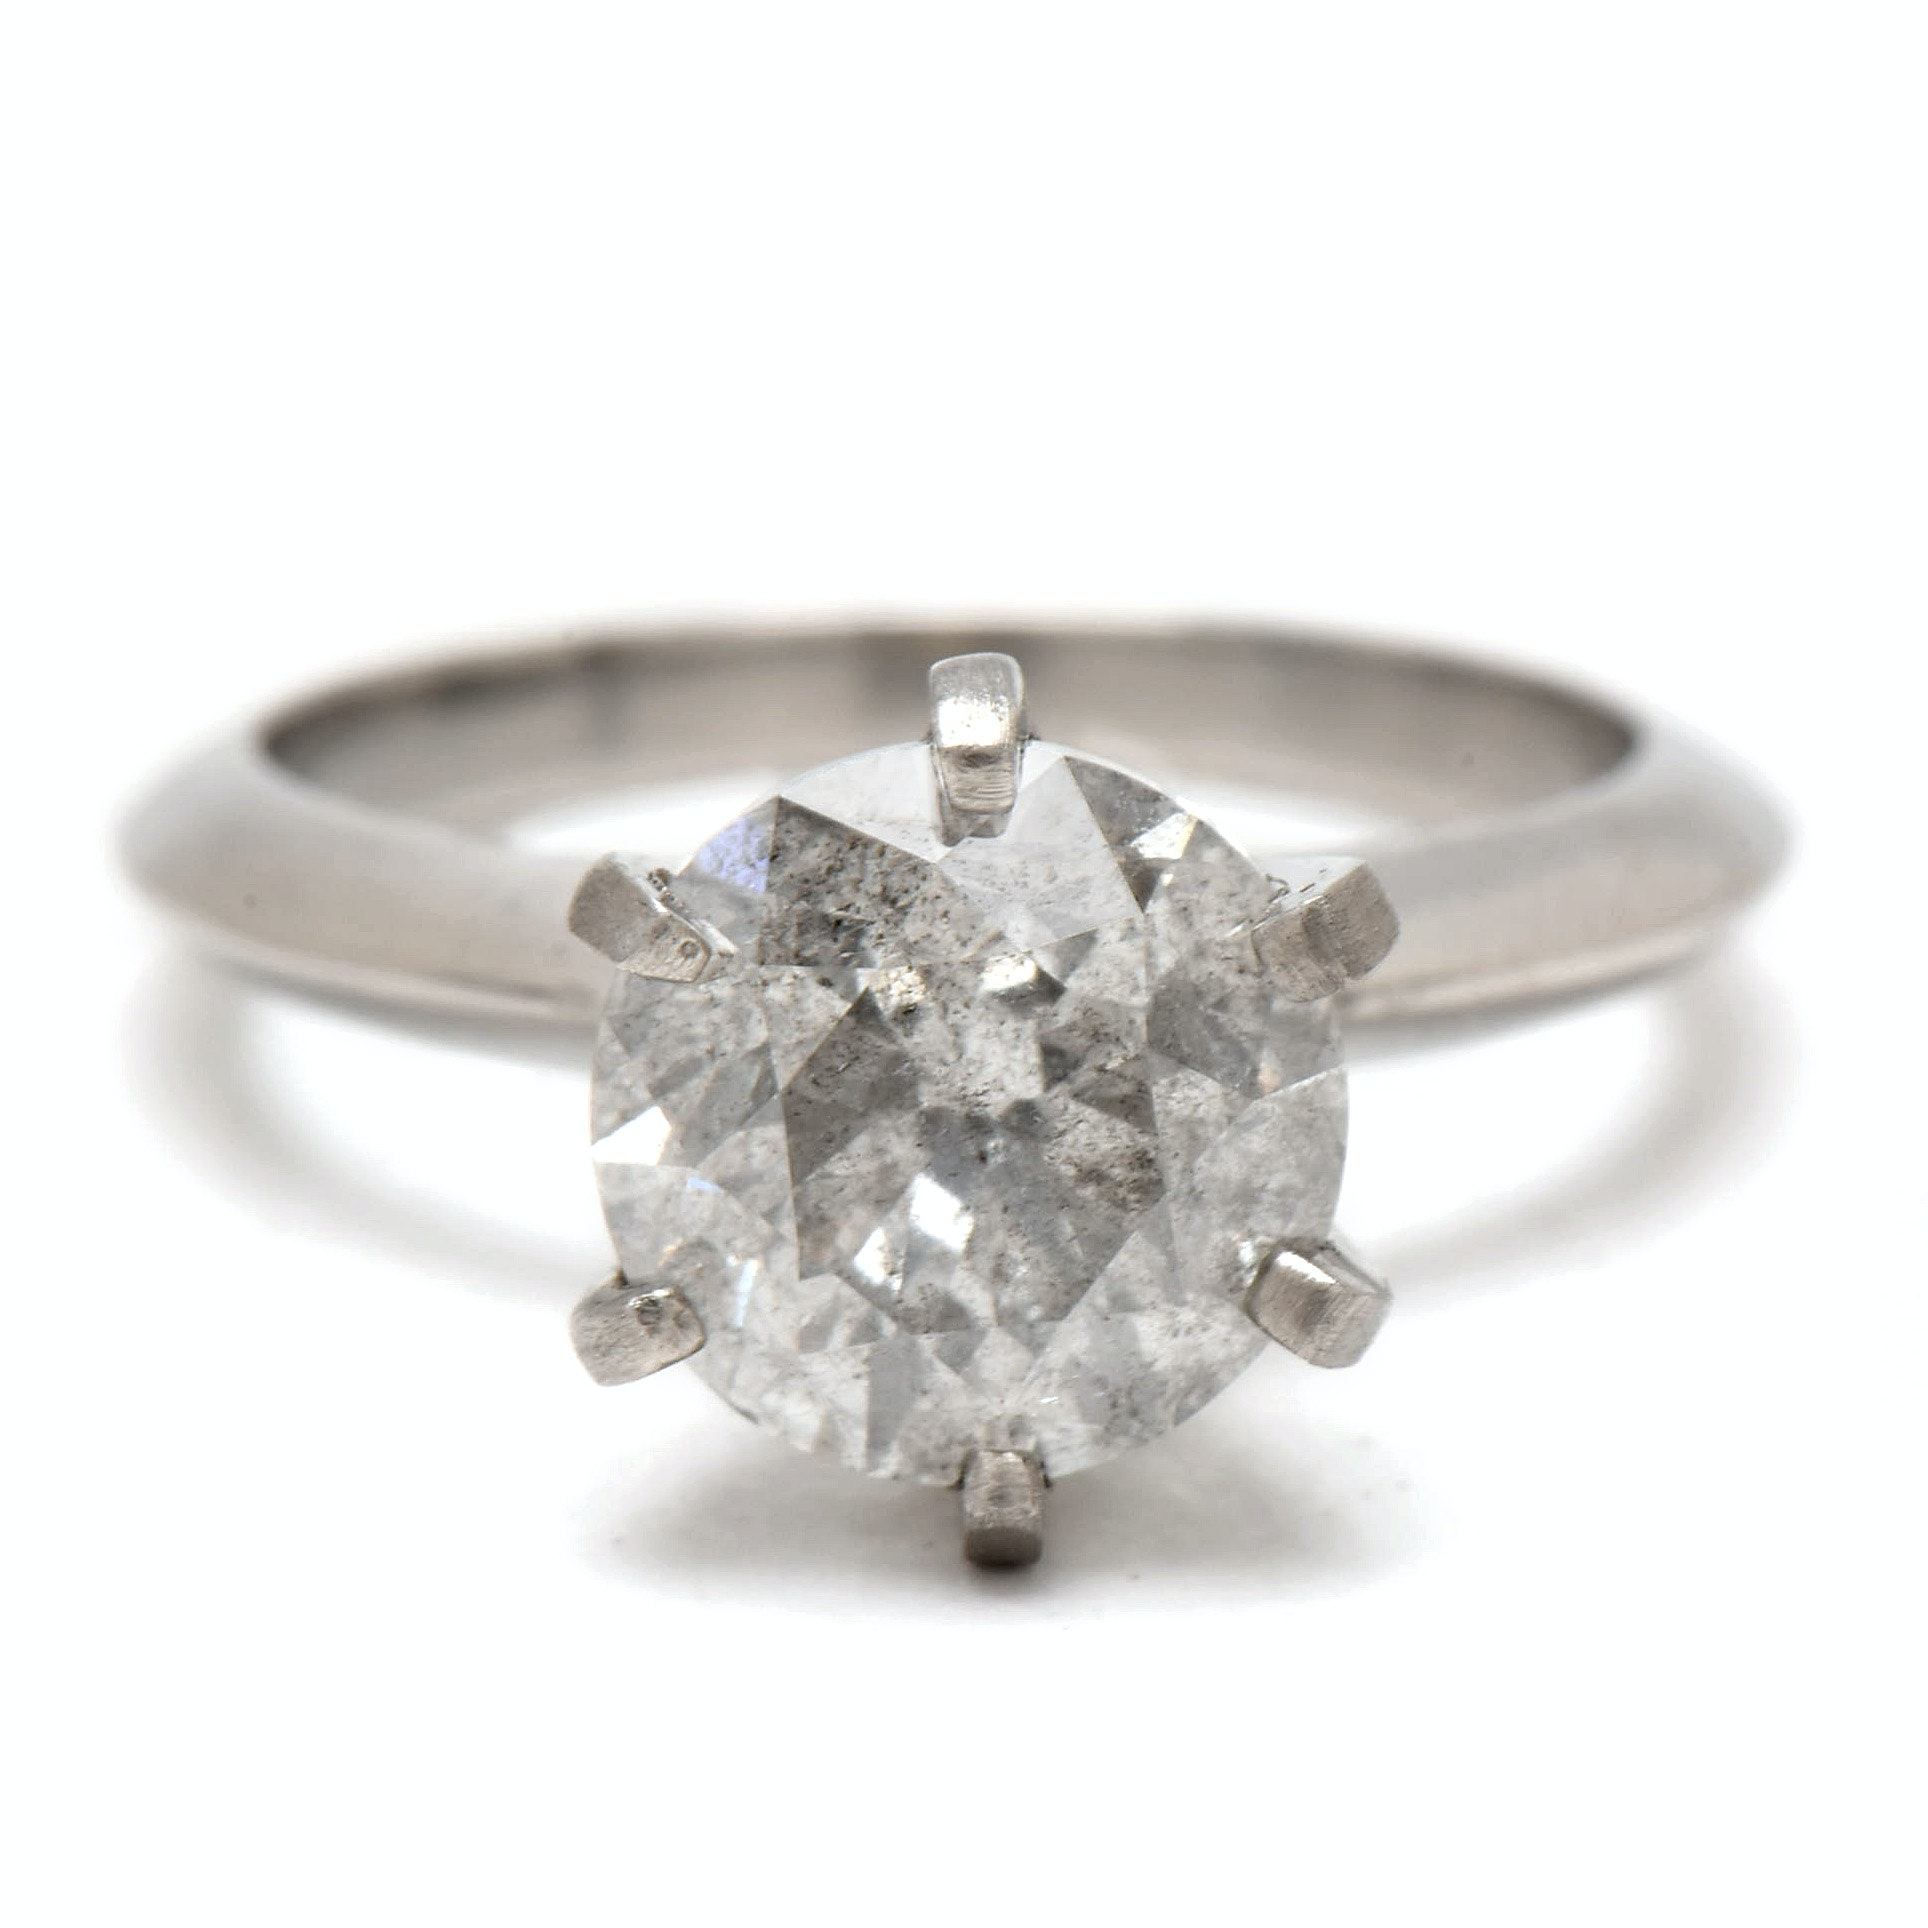 Platinum 3.15 CT Diamond Solitaire Ring